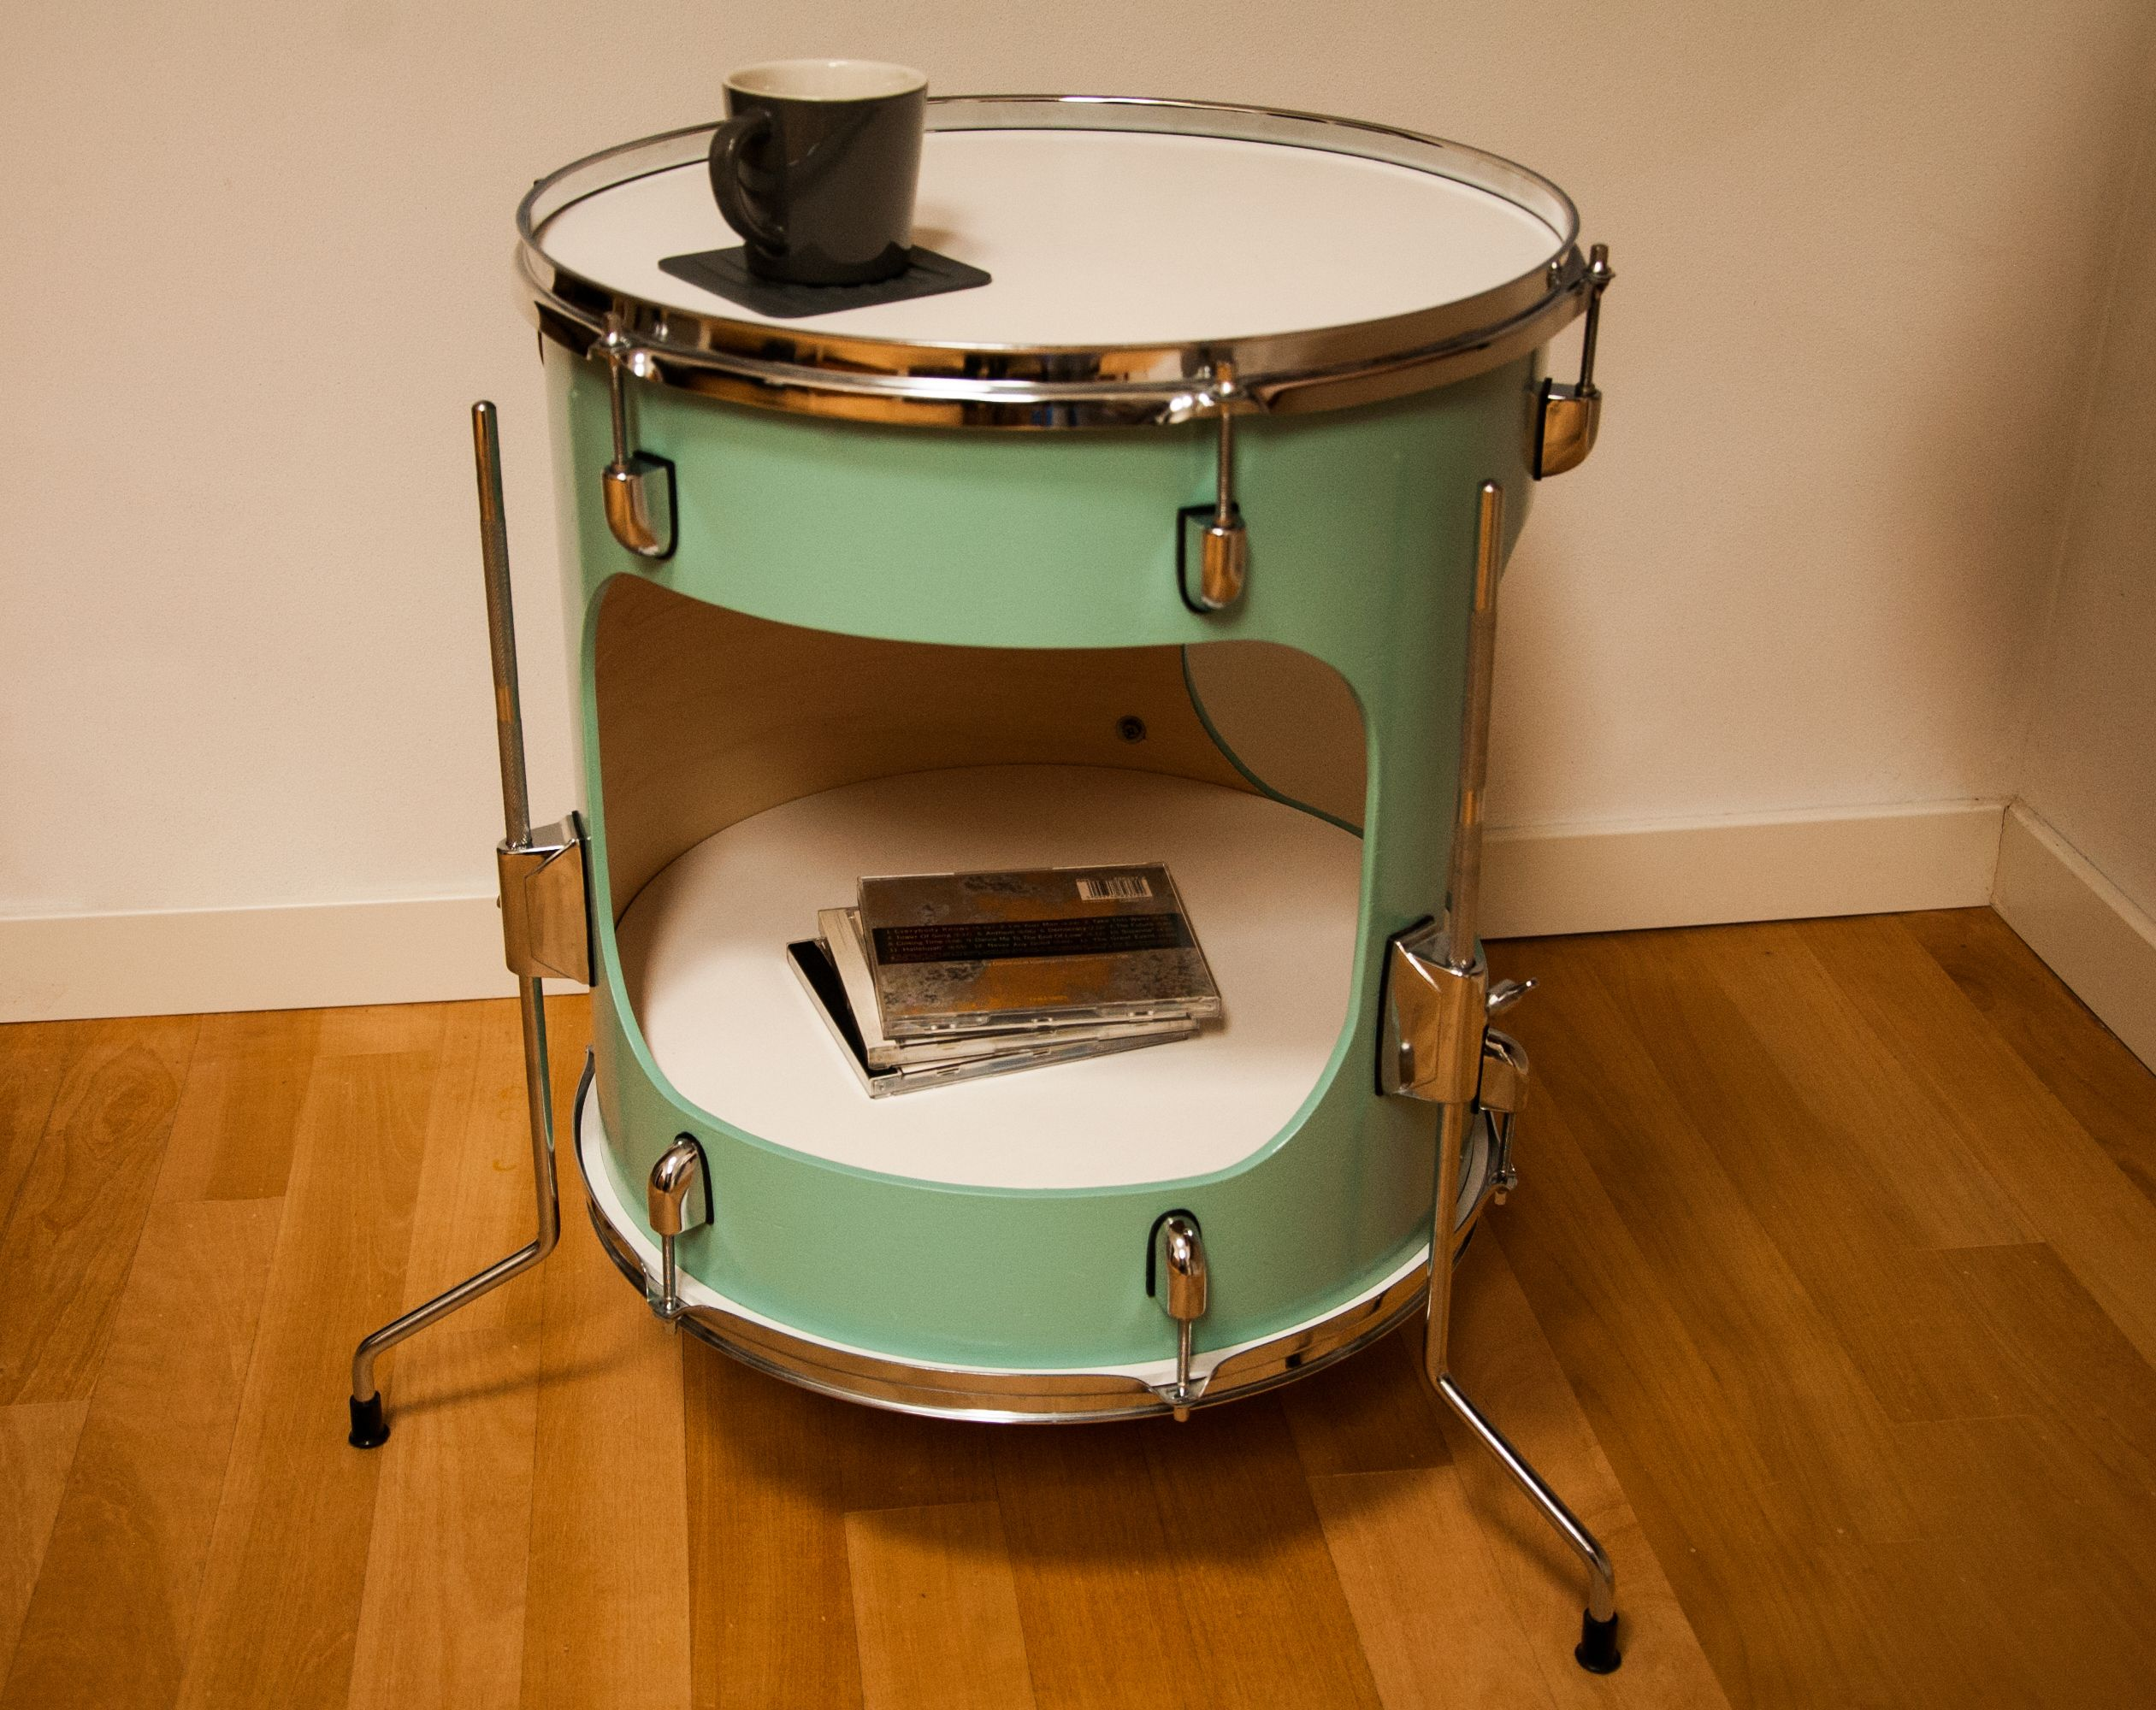 Kick Meubels ~ Brandhout meubels great furniture made of drums! cool drum